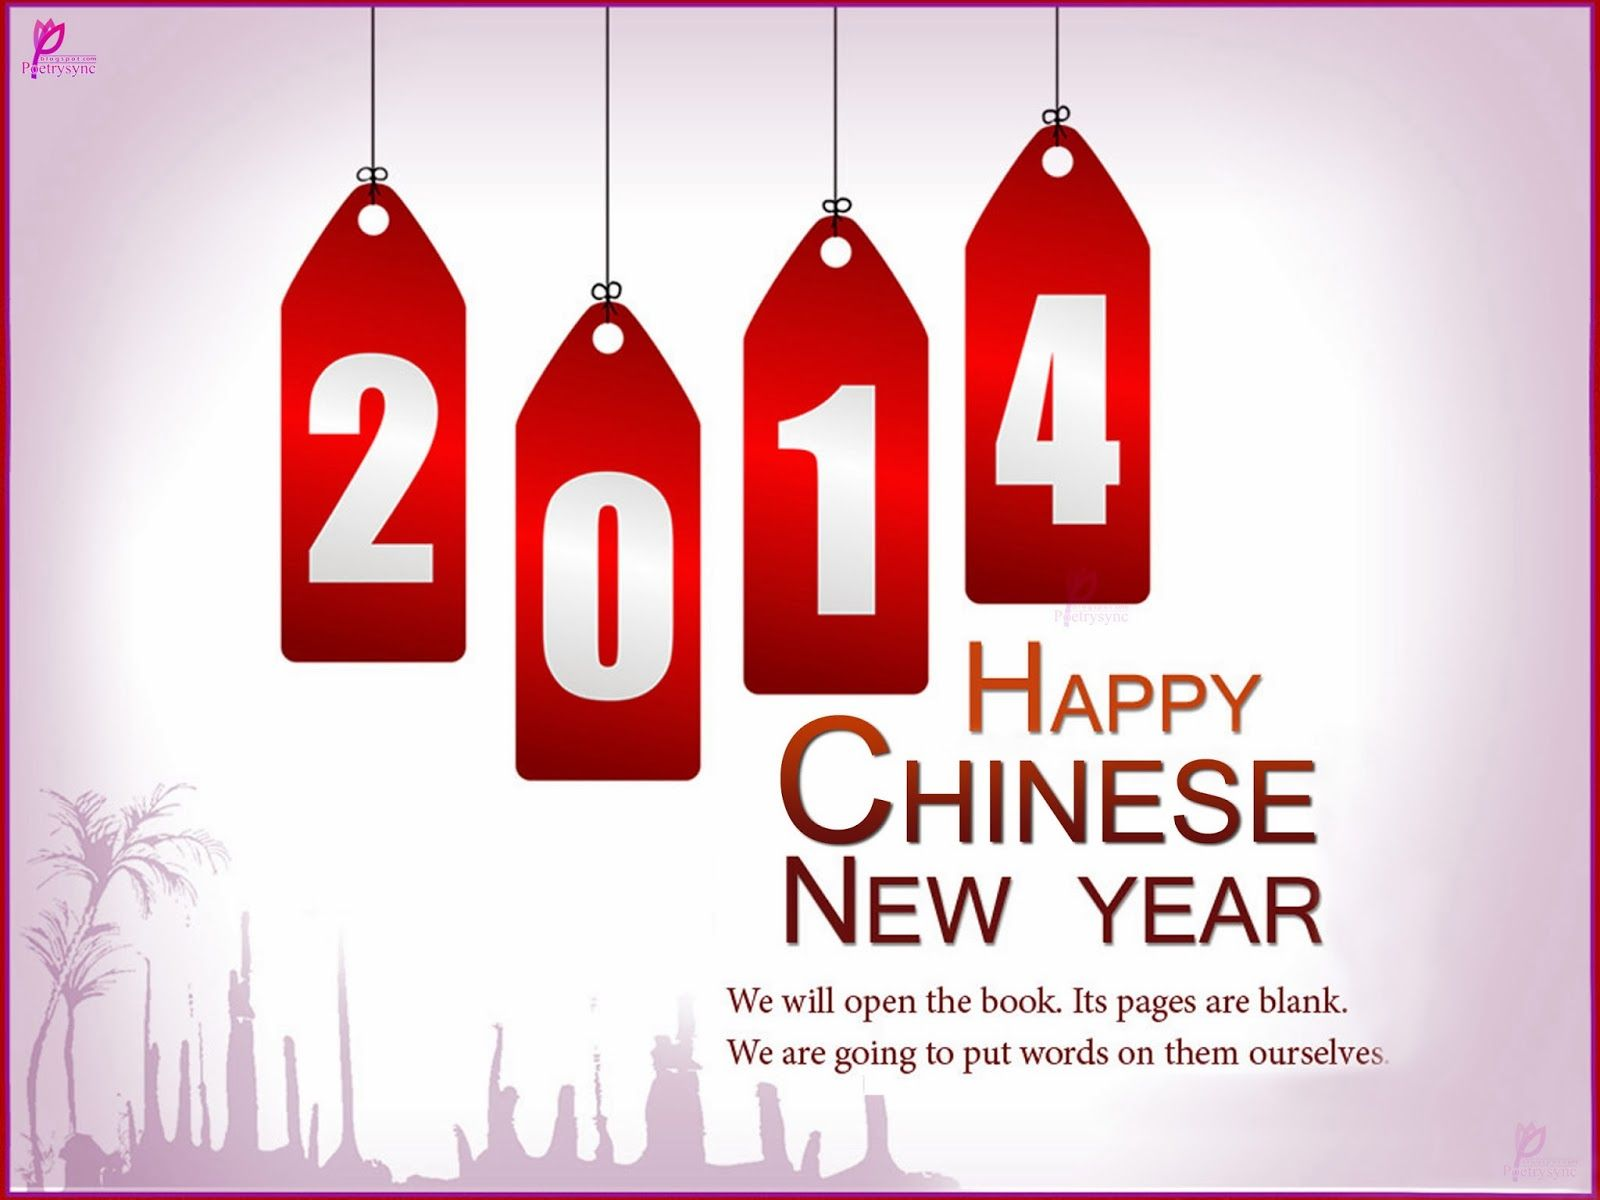 Chinese New Year Wishes Quotes And Message Image Lunar Tet New